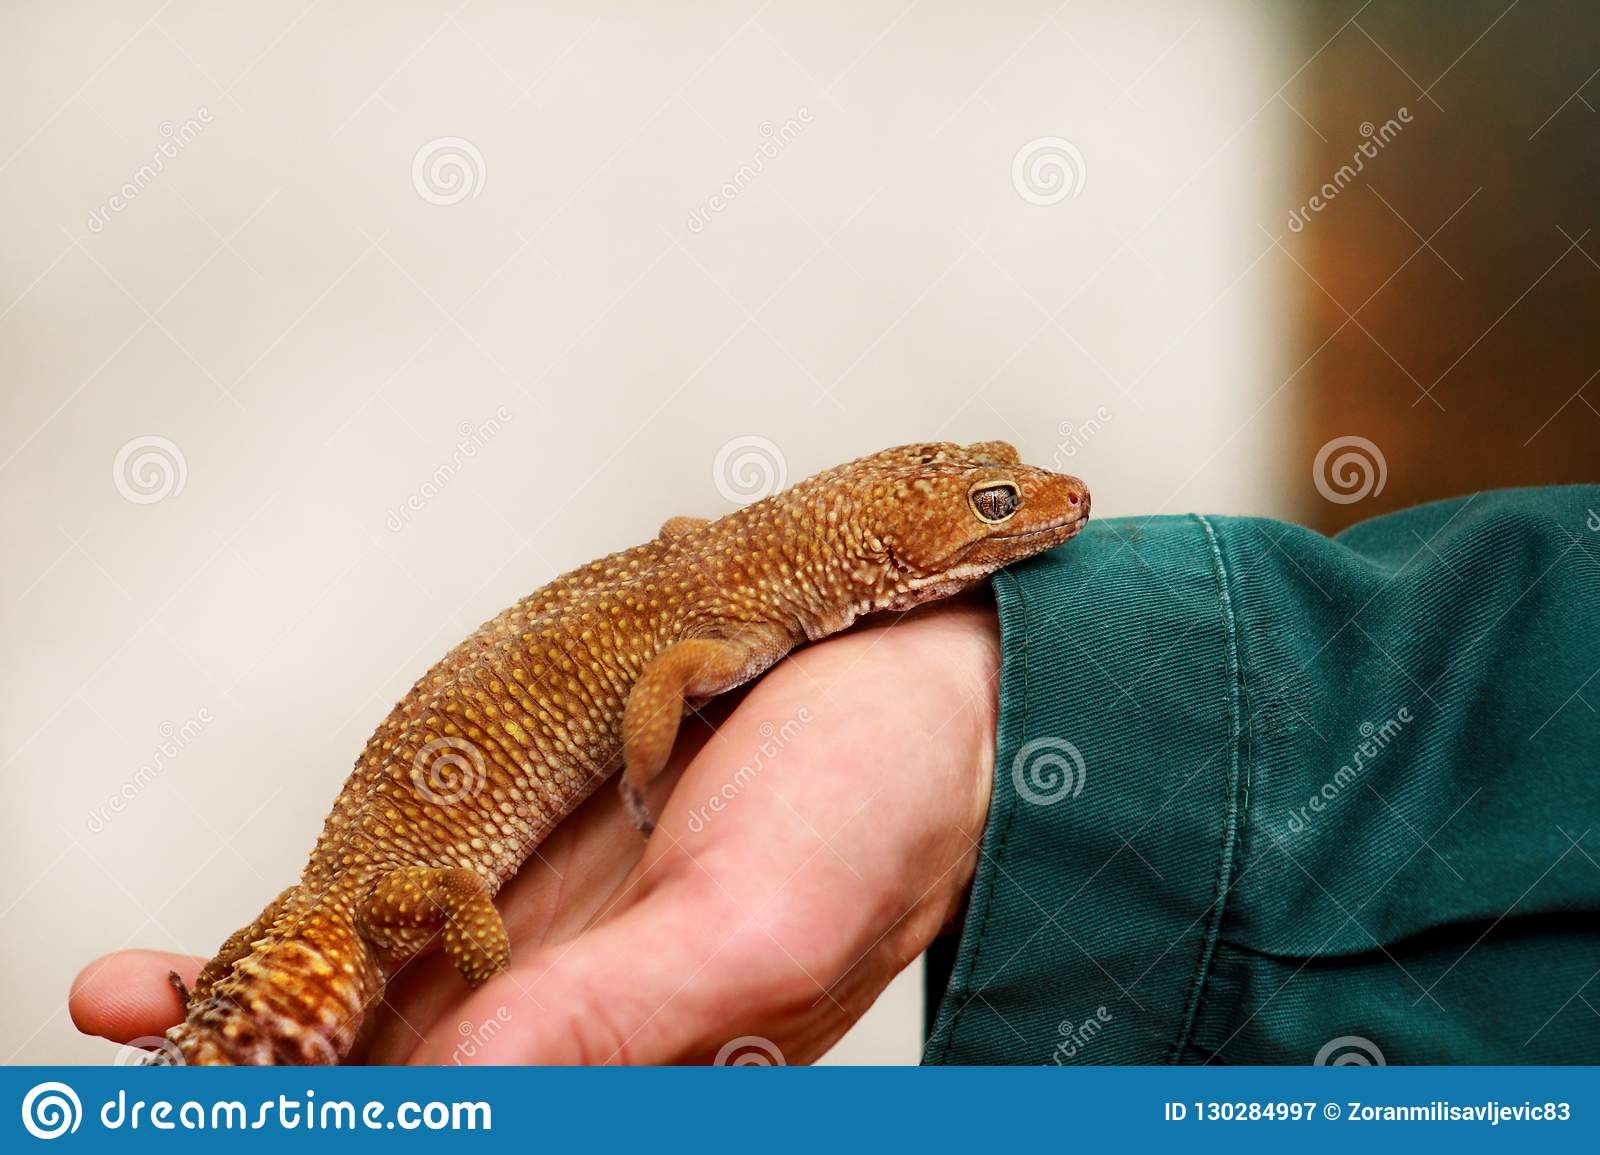 Boy With Gecko Man Holds In Hands Reptile Gecko Common Leopard Reptile Gecko Pets Exotic Tropical Cold Blooded Animals Zoo Stock Image Image Of Colorful Hand 130284997